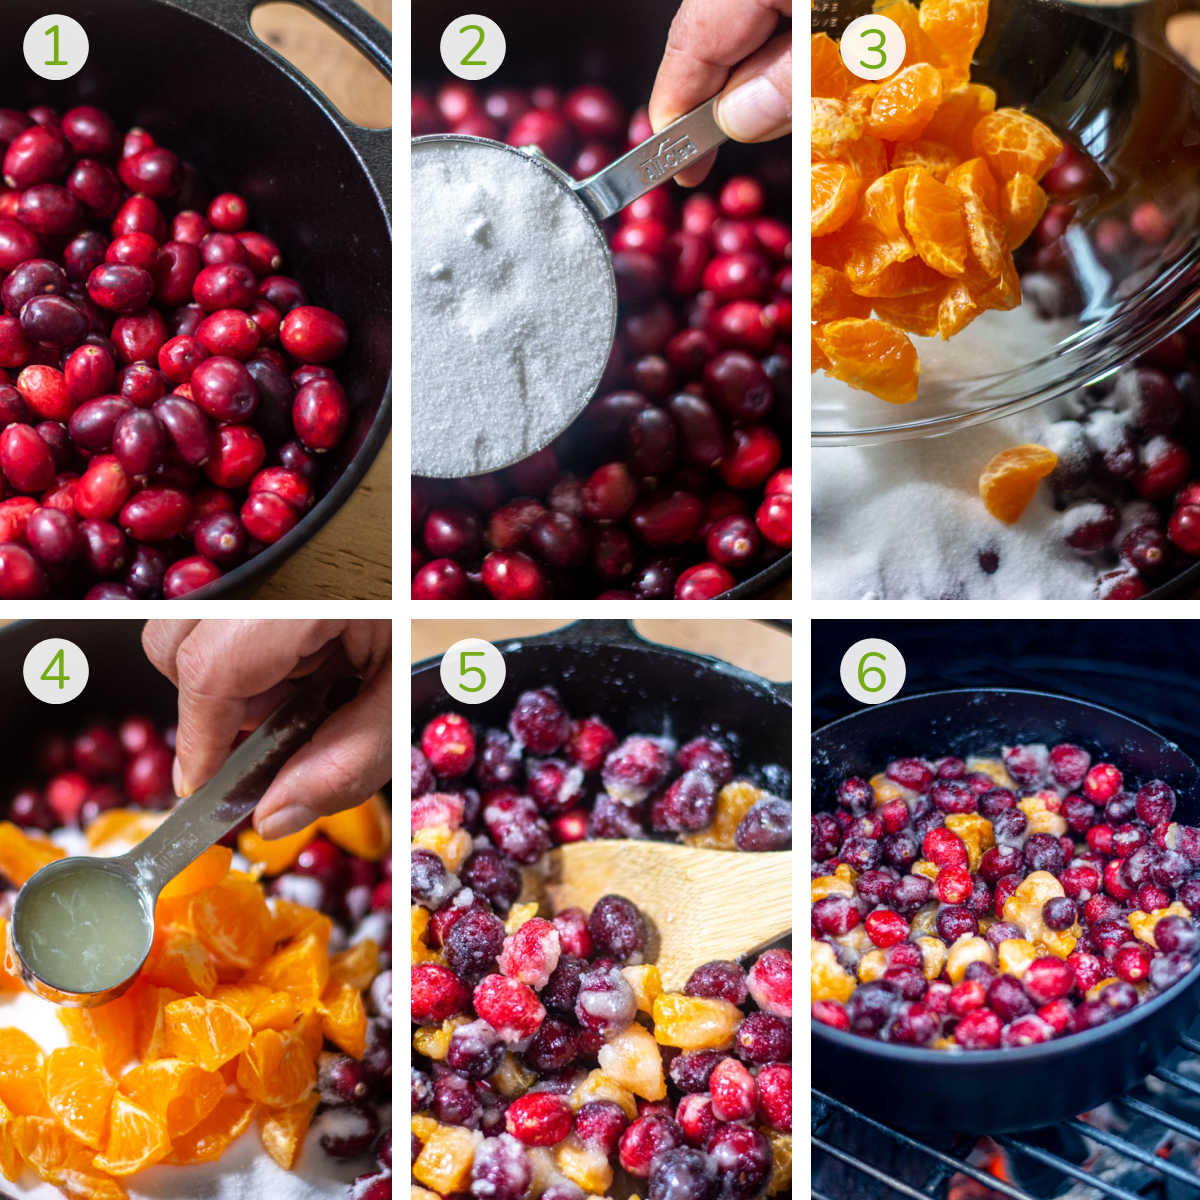 six steps to ad cranberries, sugar, clementines, lemon juice, mixing and grilling